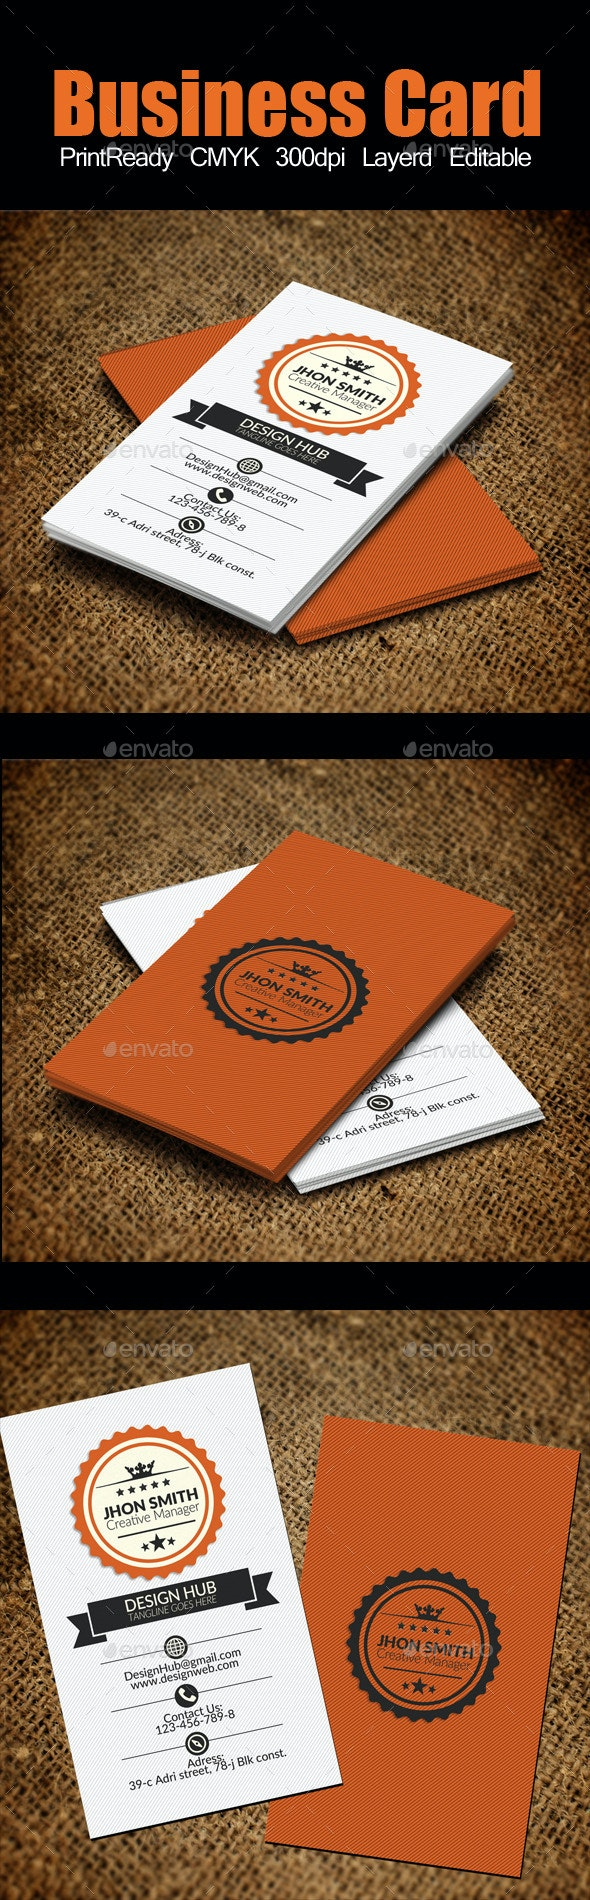 Retro Vintage Business Card - Corporate Business Cards